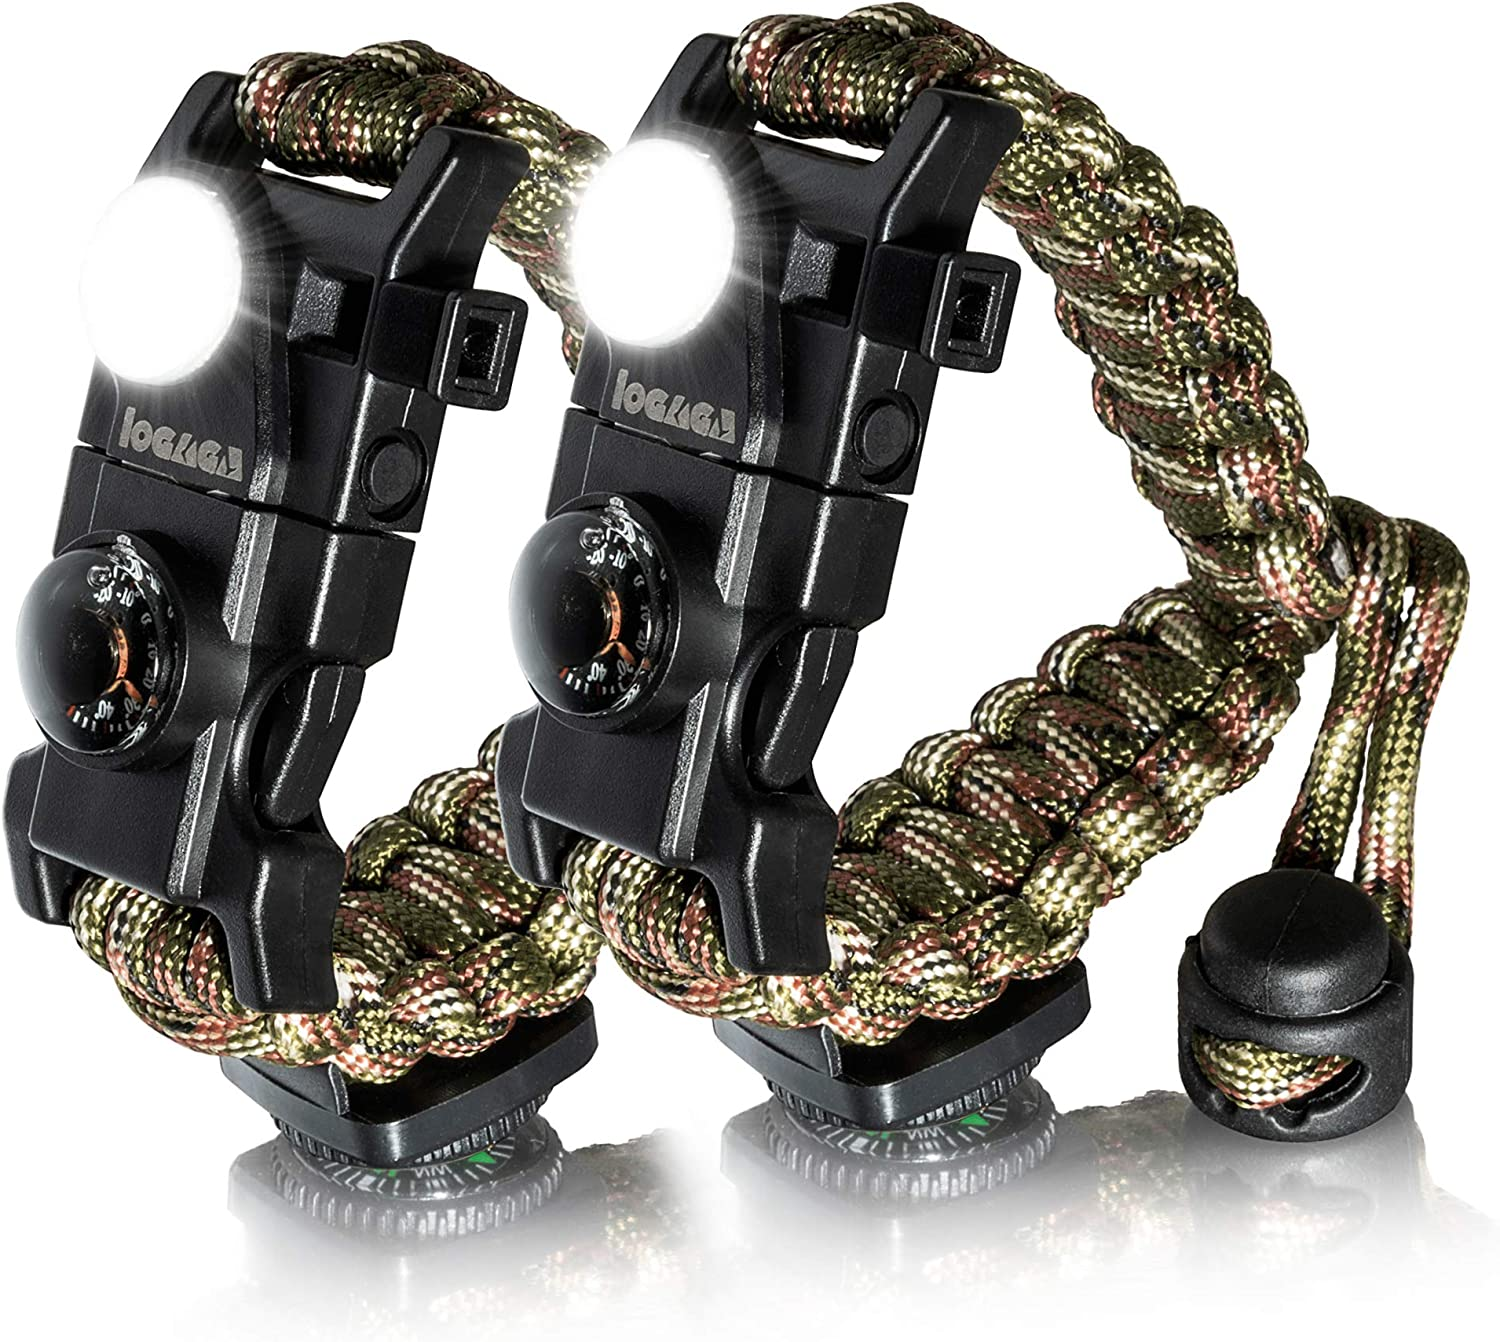 Useful and Practical Army Green Camouflage Outdoor Survival Compass Bracelet Whistle Gear Flint Fire Starter Bracelet